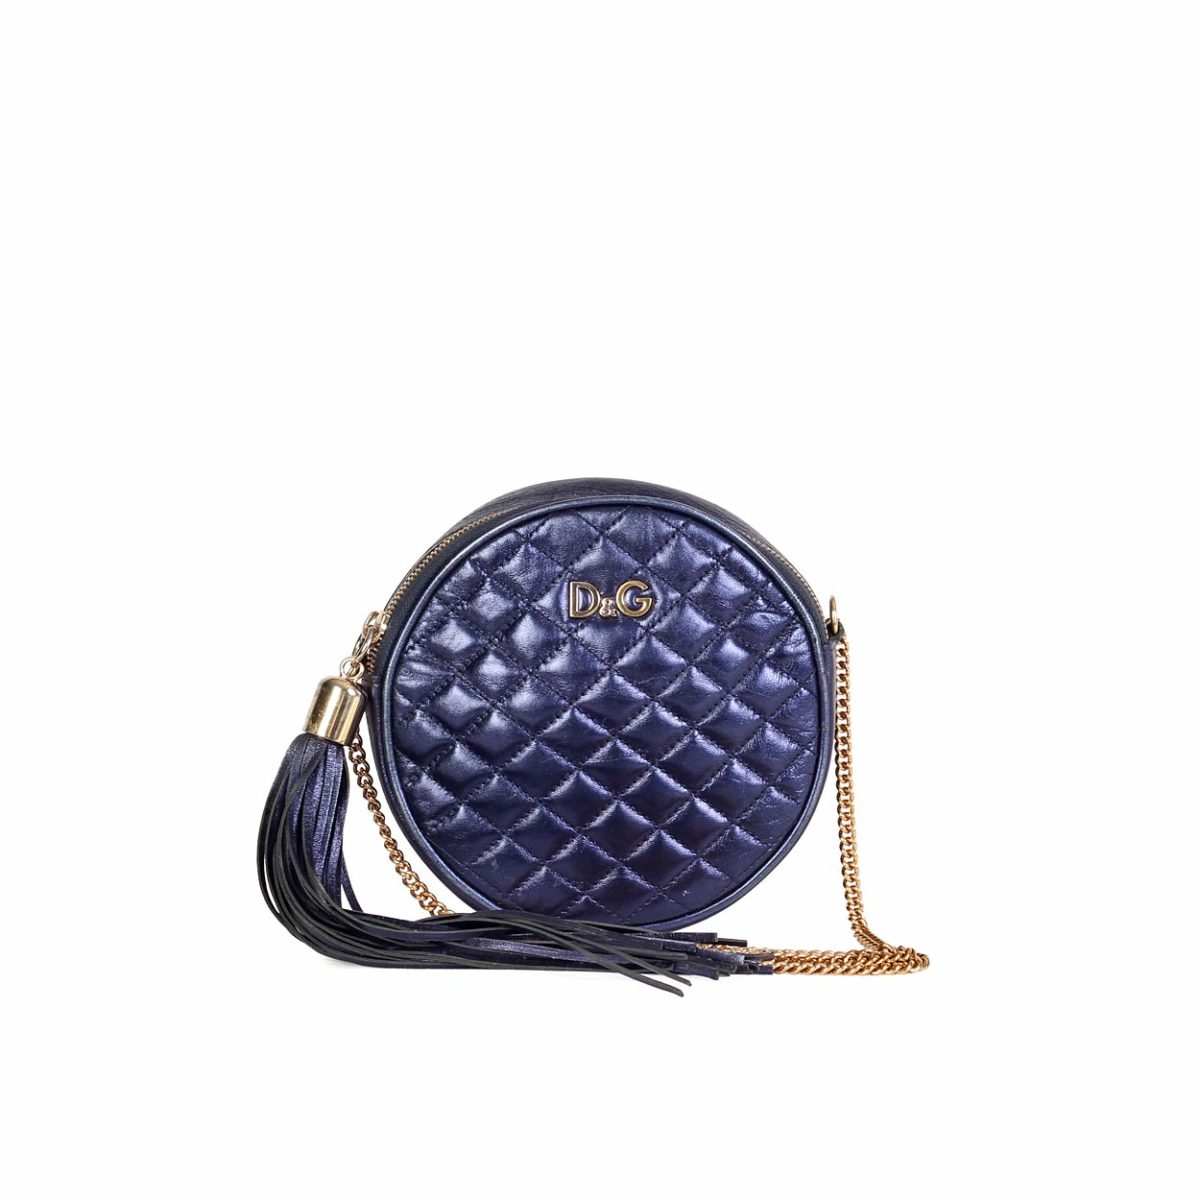 D G Lily Glam Round Quilted Cross-Body bag  c06c01e9f74b3